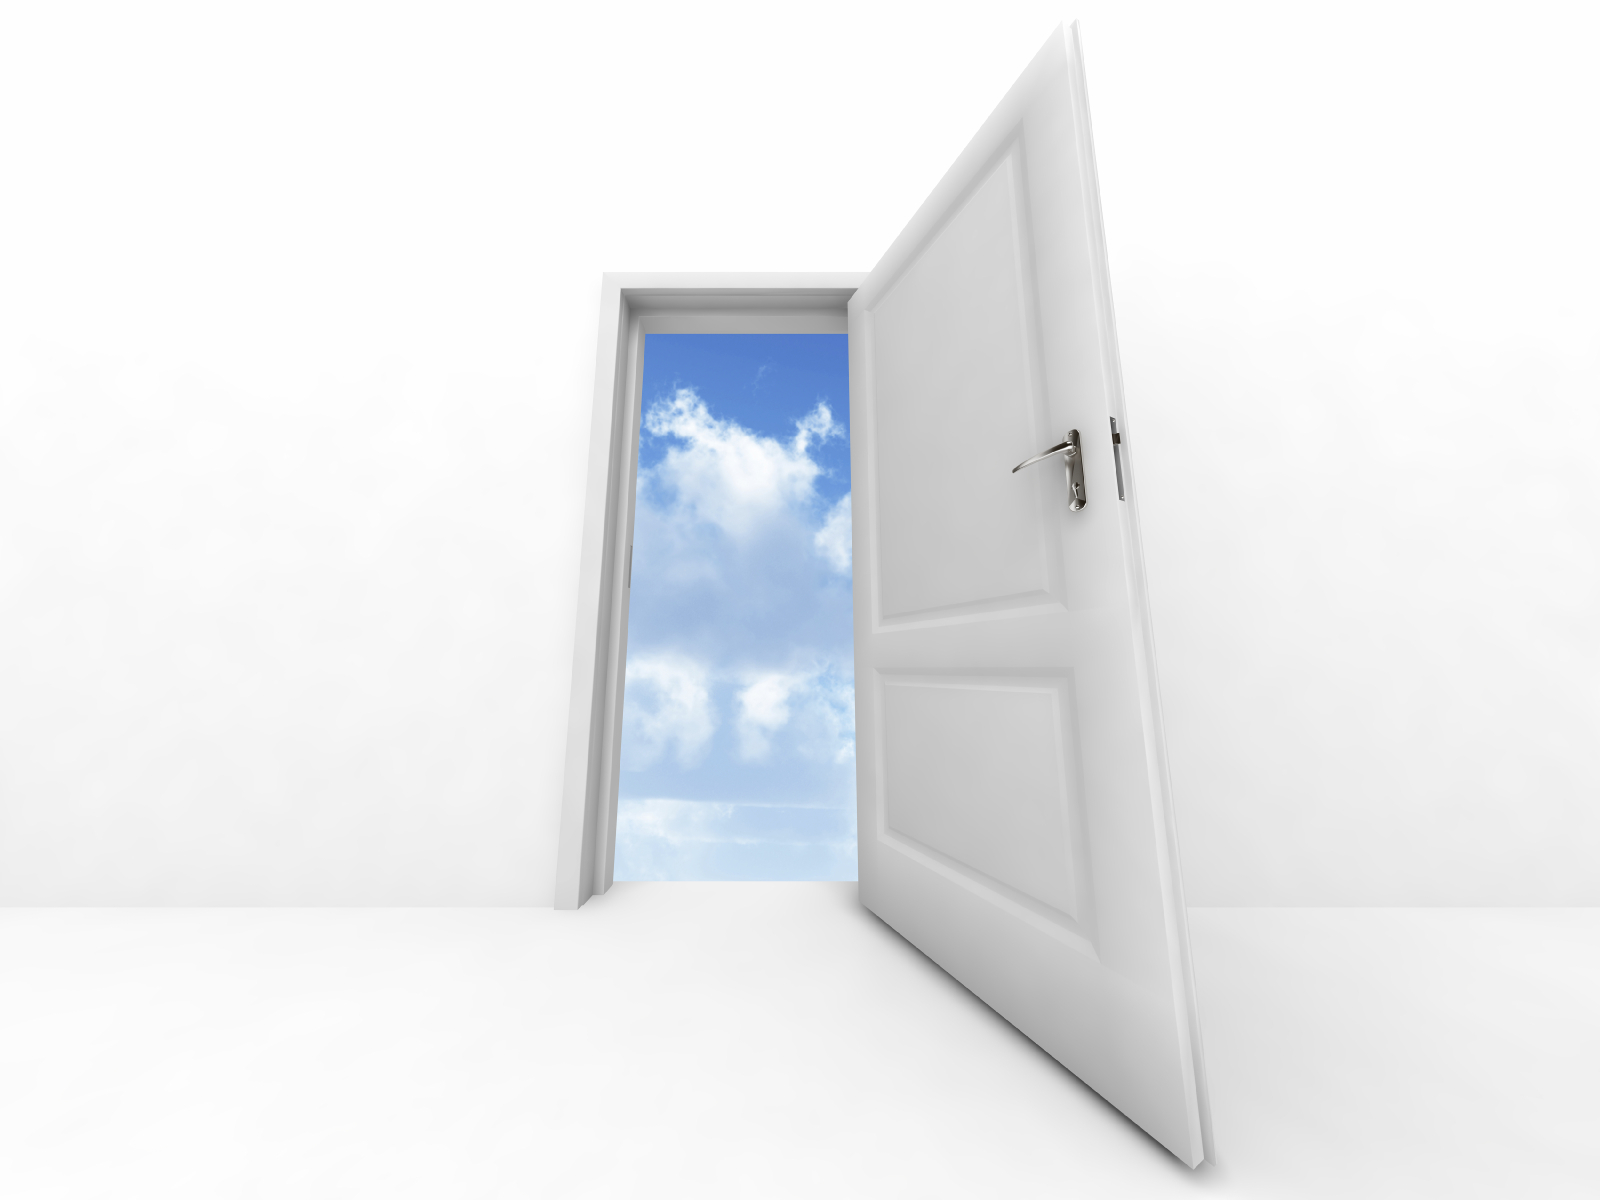 wall and opened to sky door on a white background 1600x1200